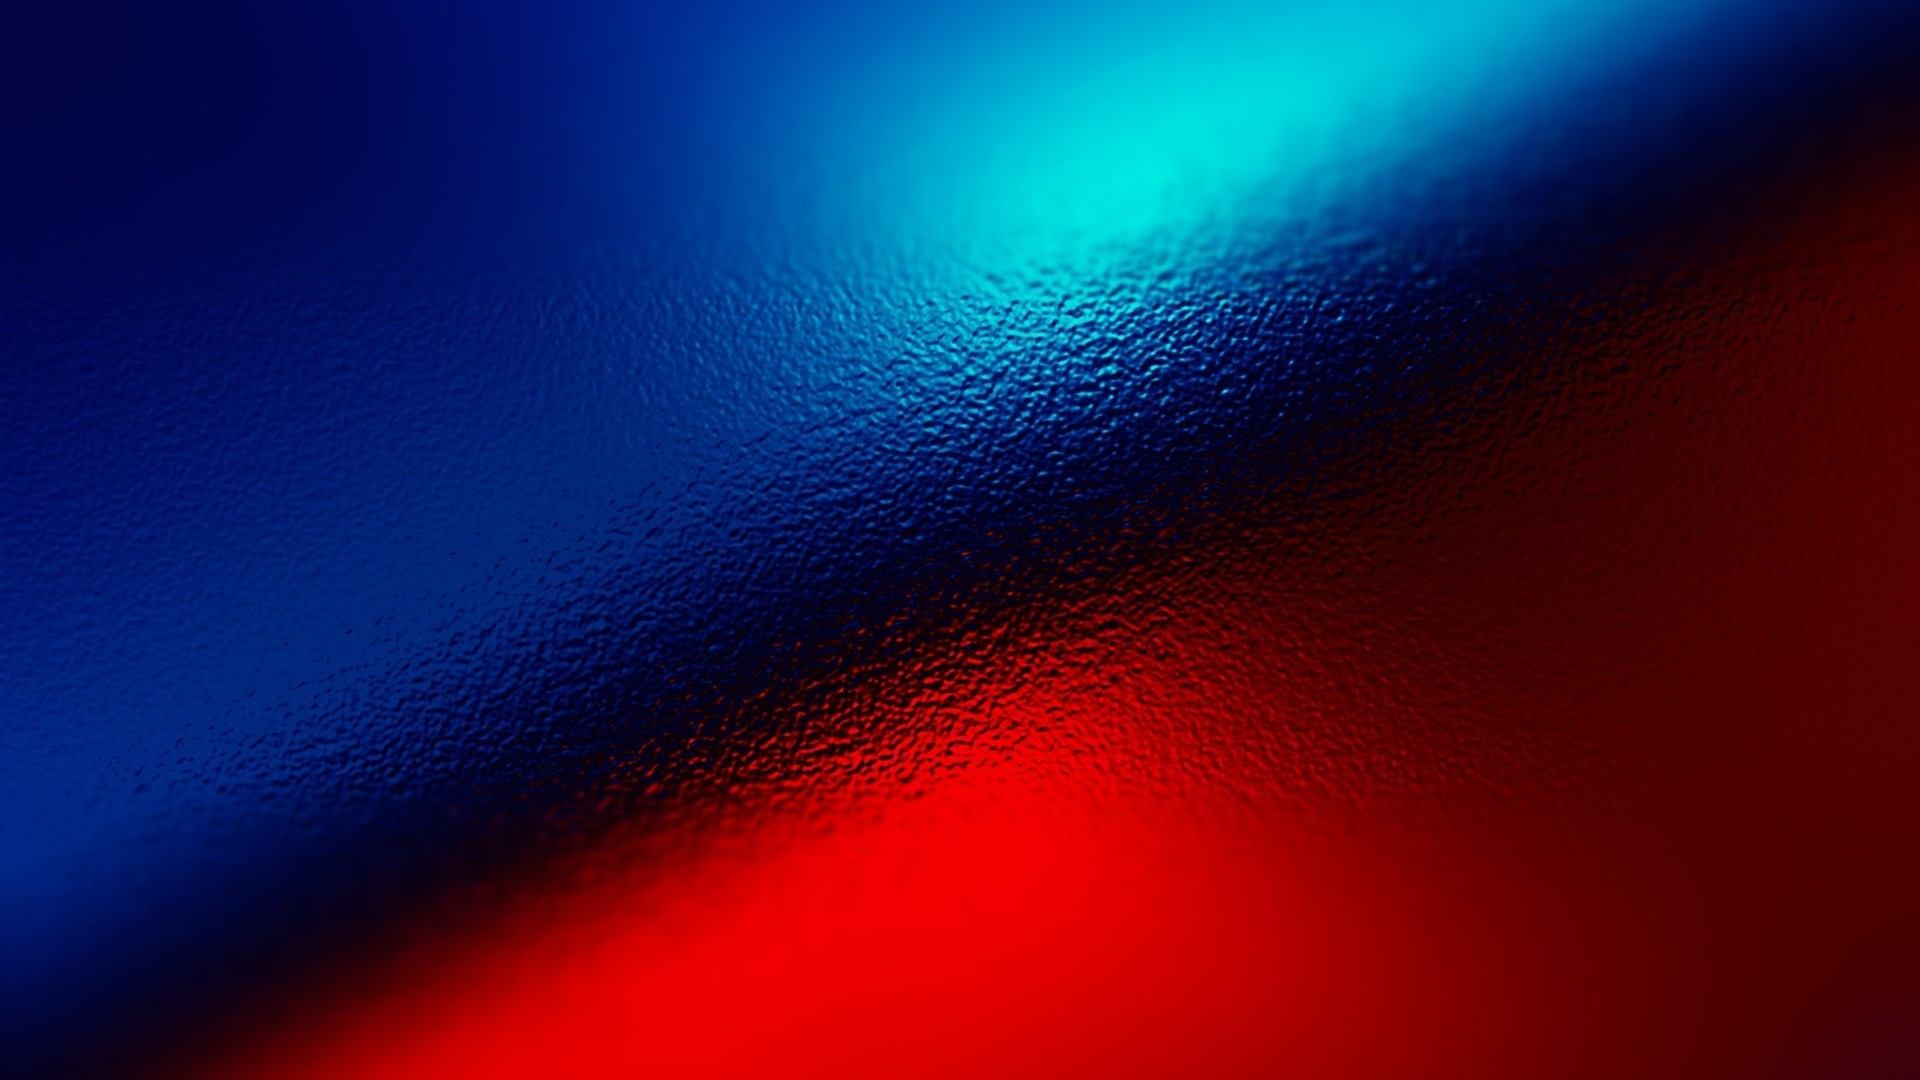 Red and Blue Wallpaper - WallpaperSafari